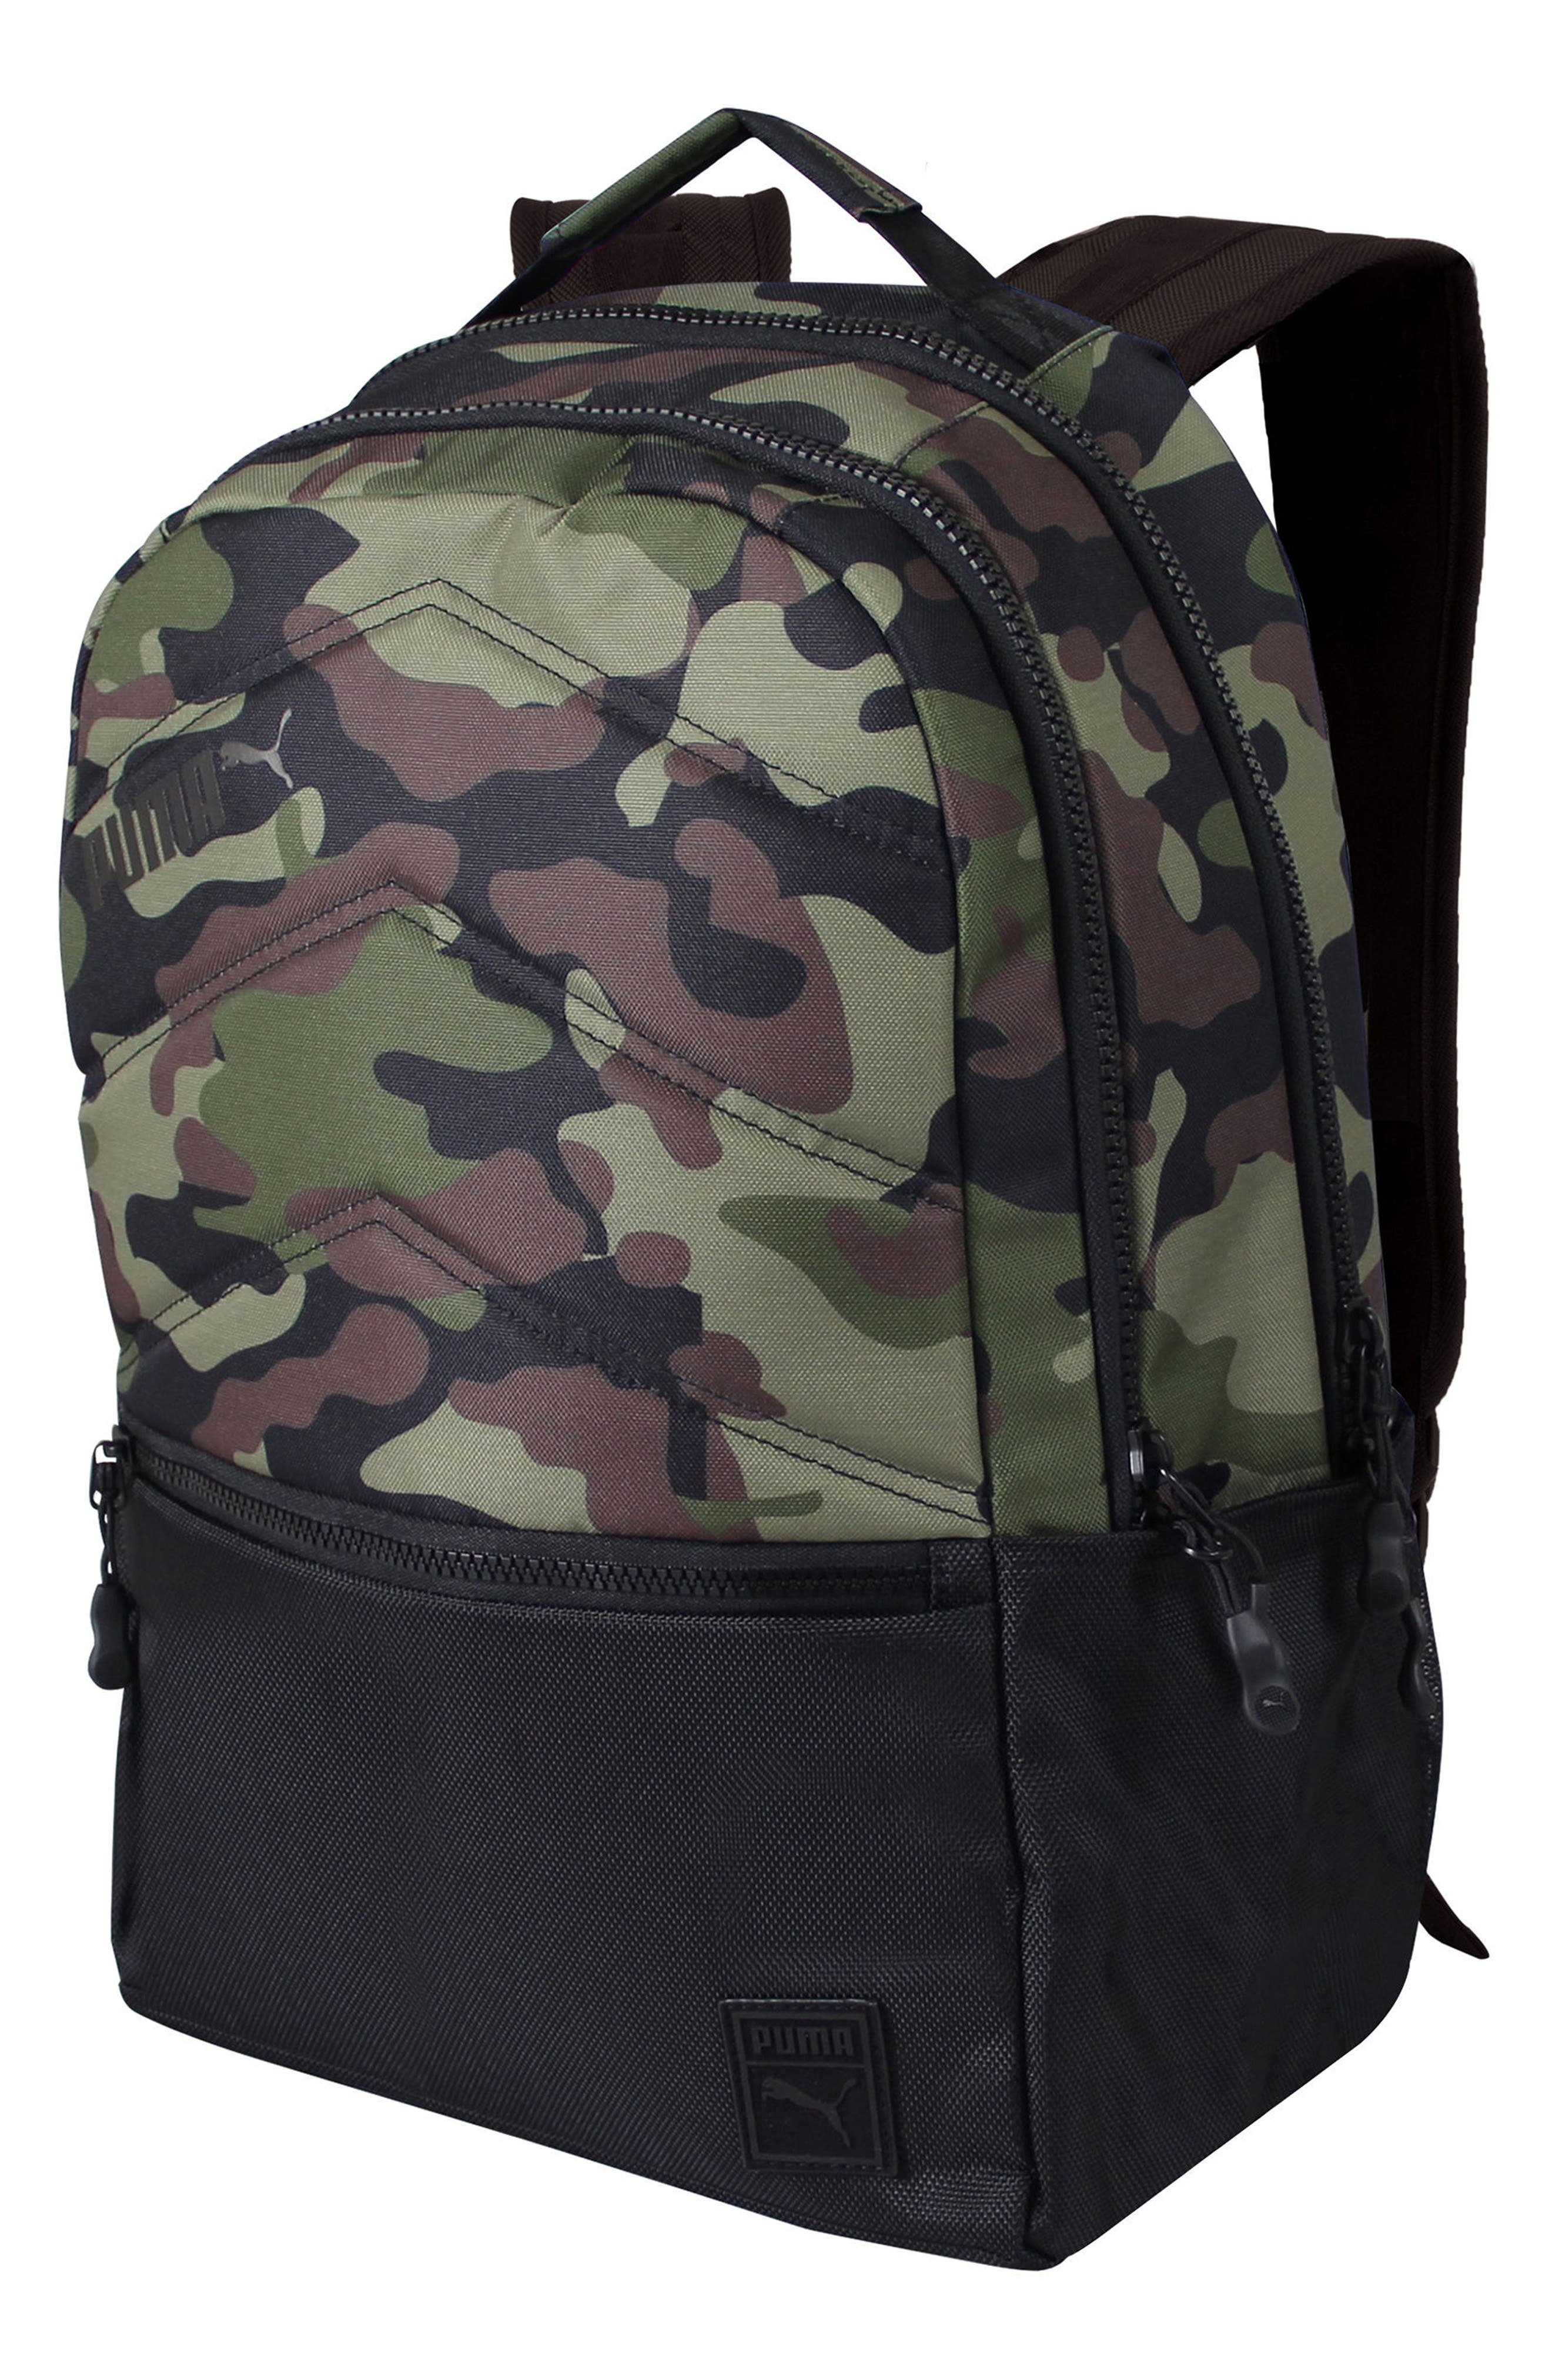 READY BACKPACK - GREEN